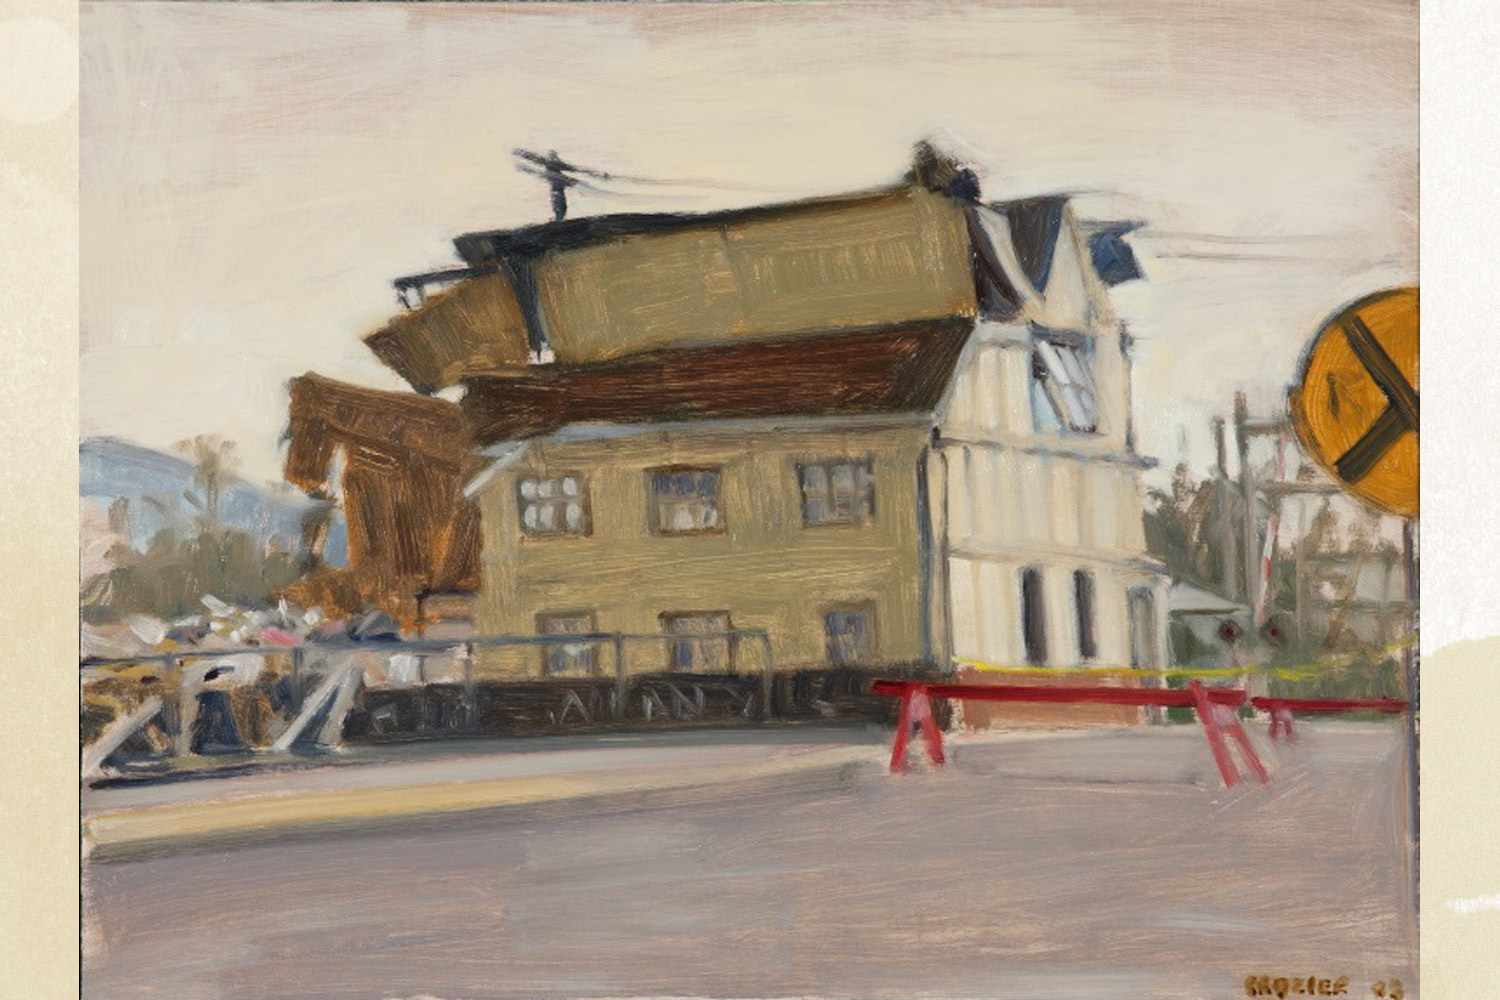 Continuing his interest in demolition and construction, Crozier painted the 2002 demolition of Trax nightclub, notable for hosting the Dave Matthews Band in its early years. The building was also home to a country-western nightclub called Max.